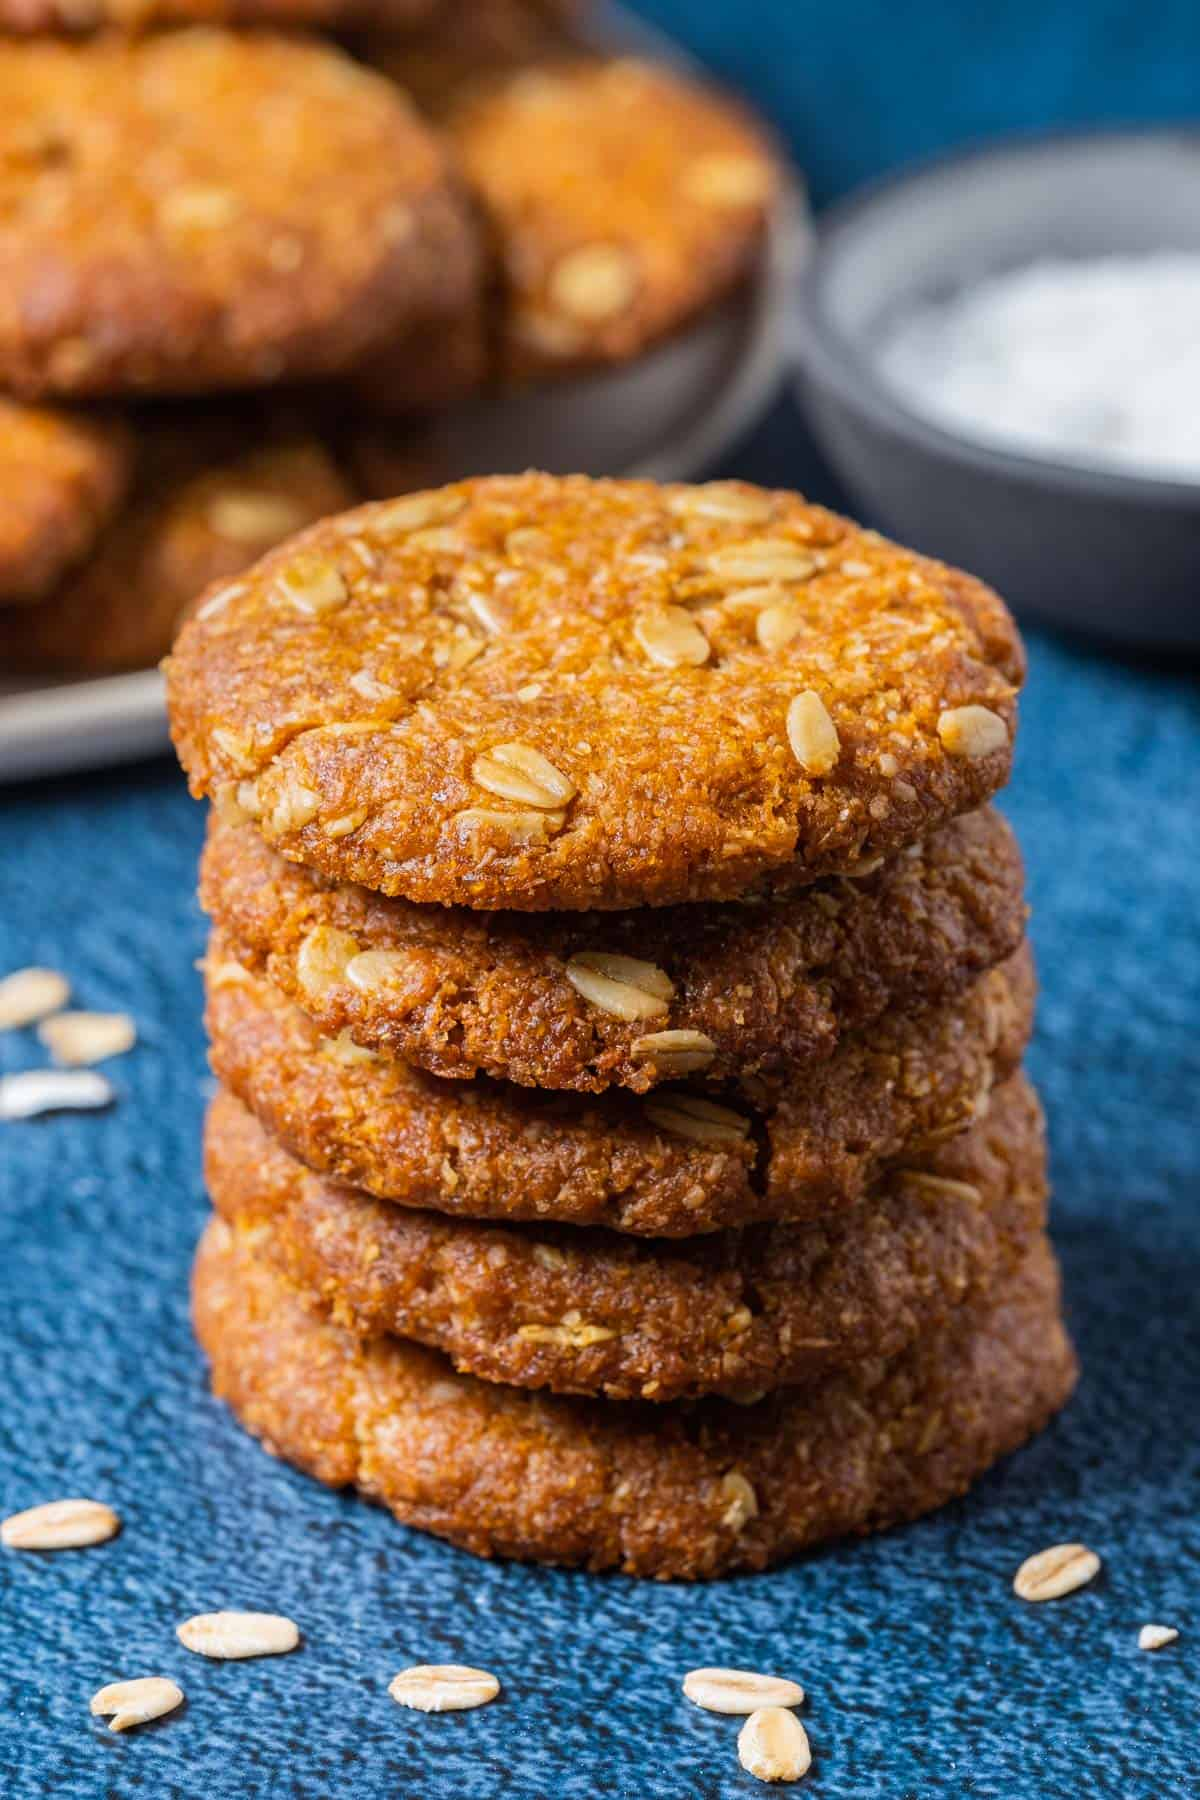 A stack of vegan Anzac biscuits.